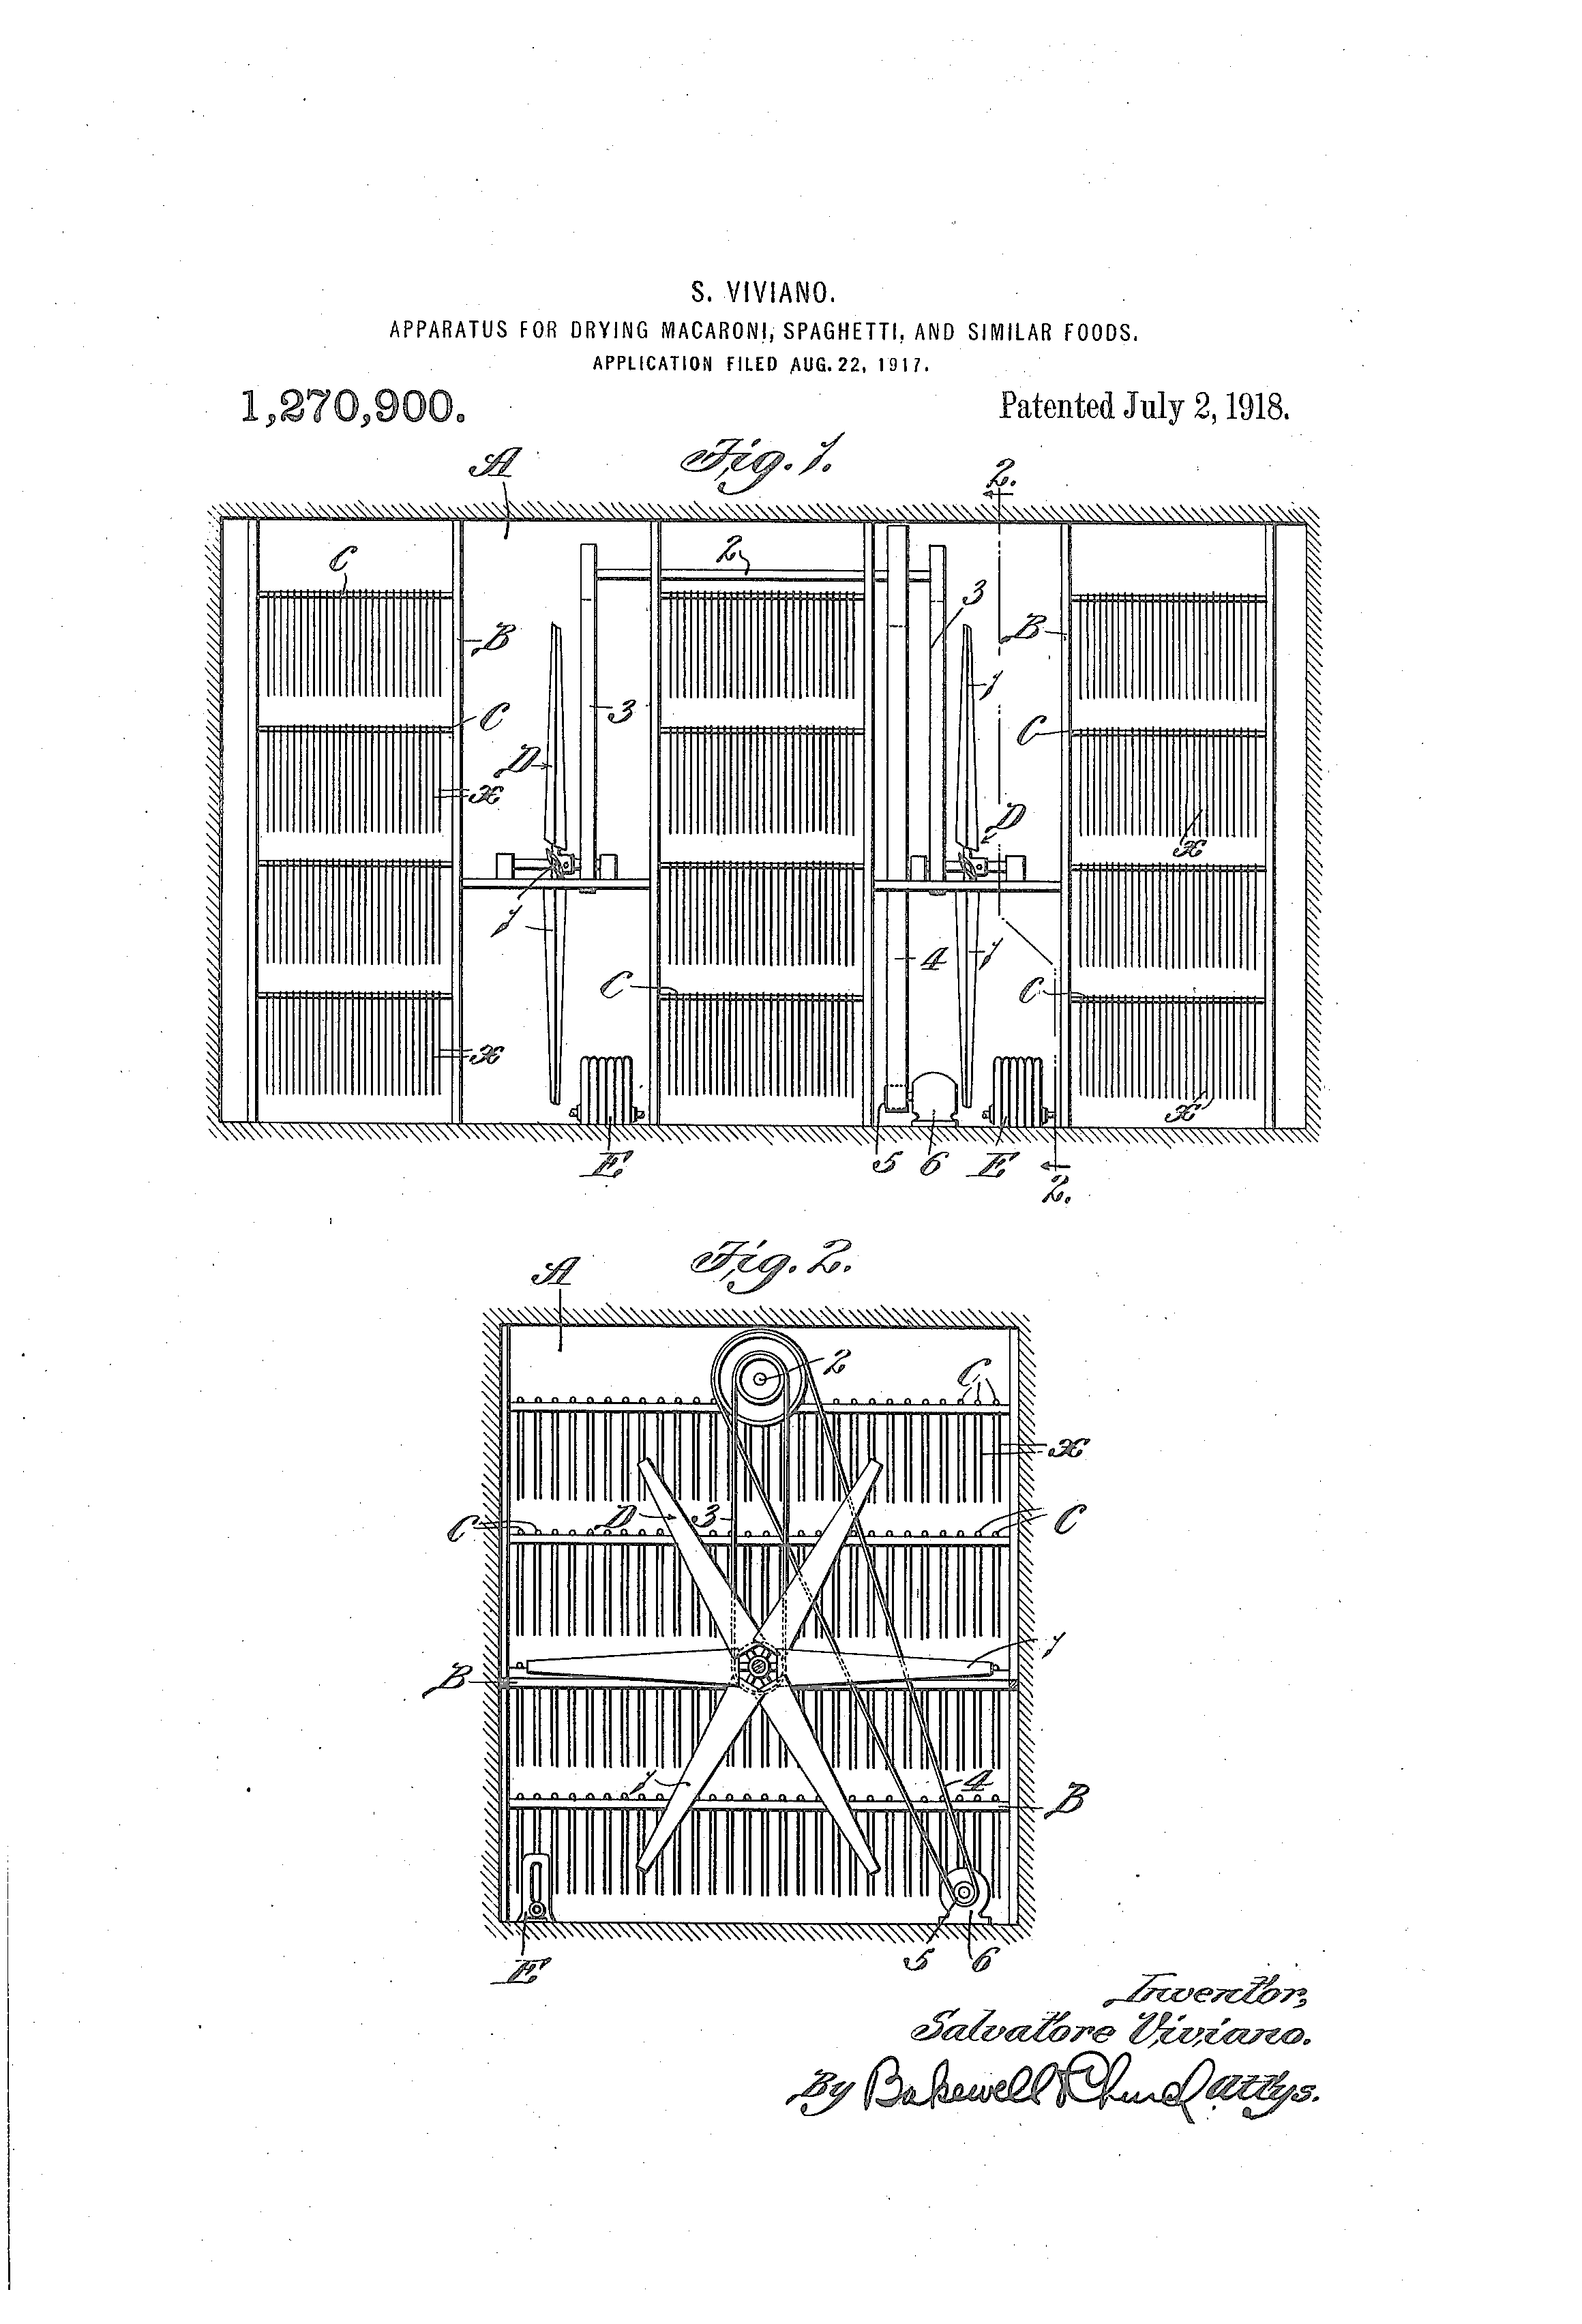 Patent US1270900 - Apparatus For Drying Macaroni, Spaghetti, and Similar Foods. Salvatore Viviano, Inventor